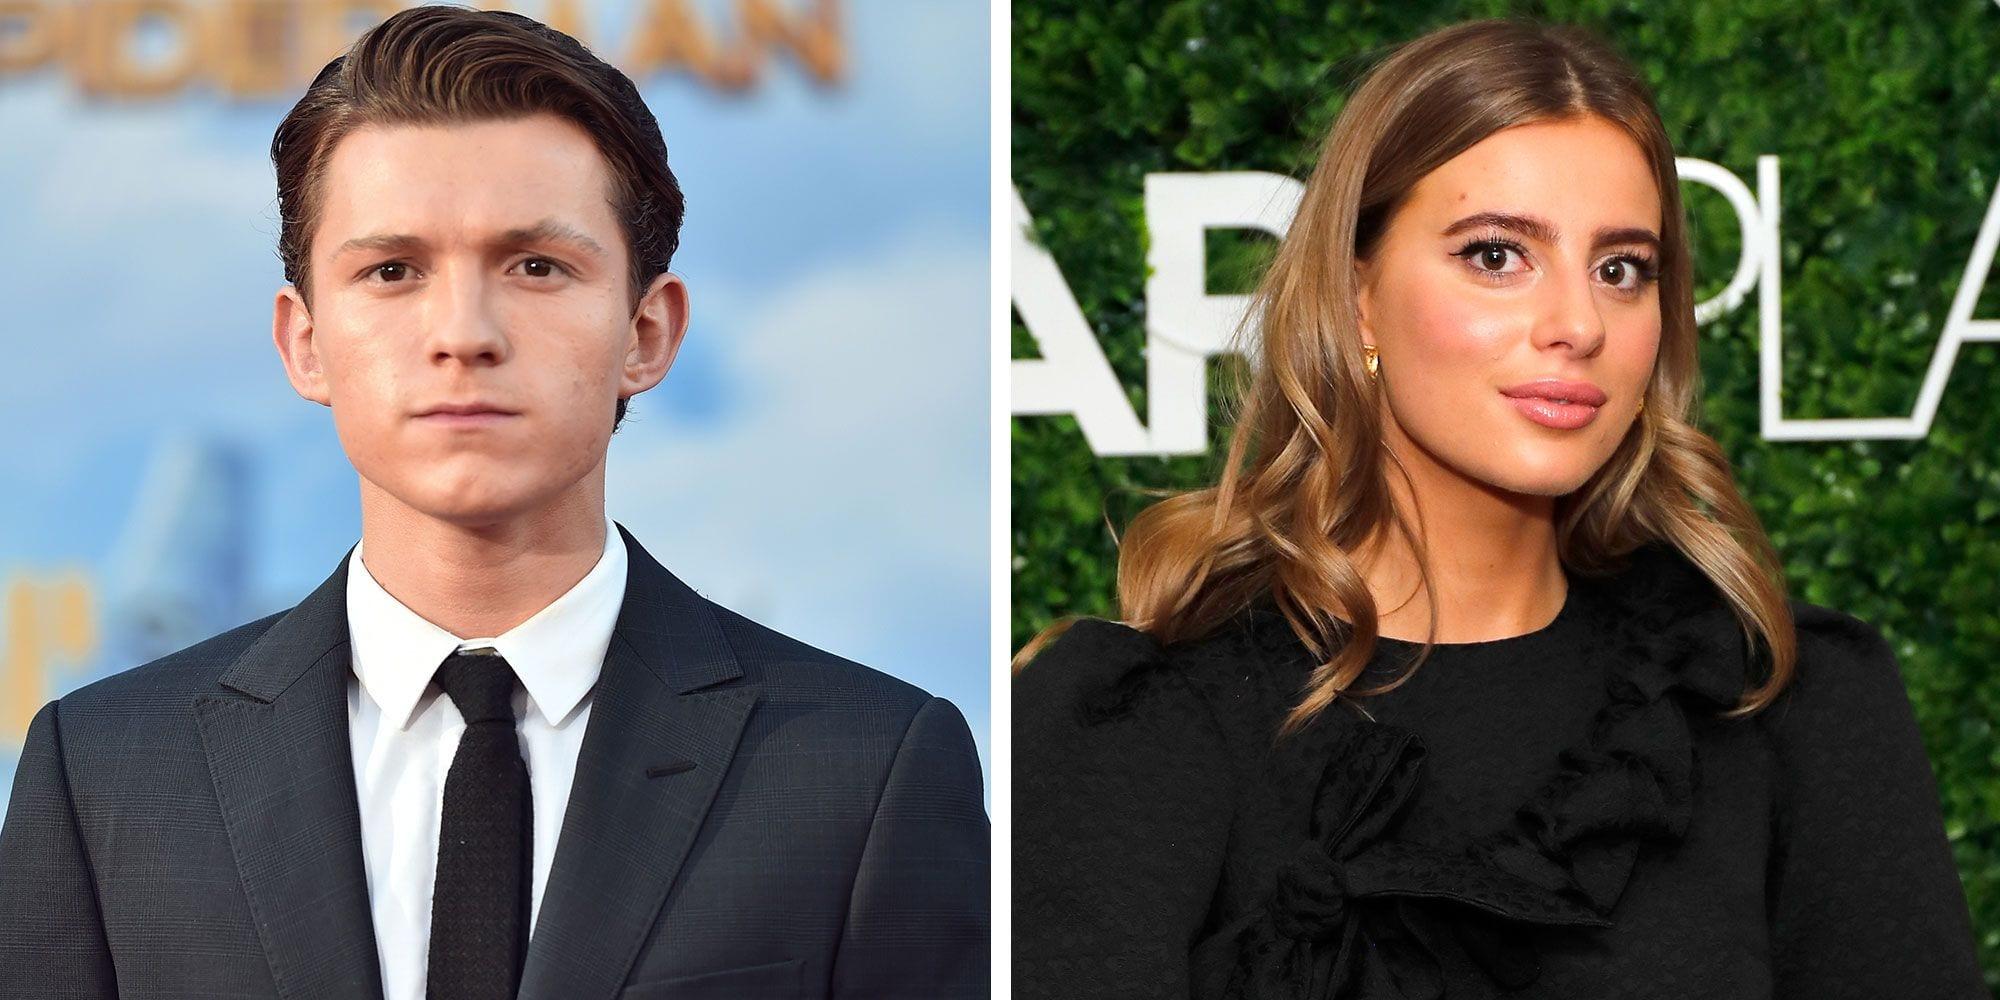 Nadia Parkes in a relationship with Tom Holland